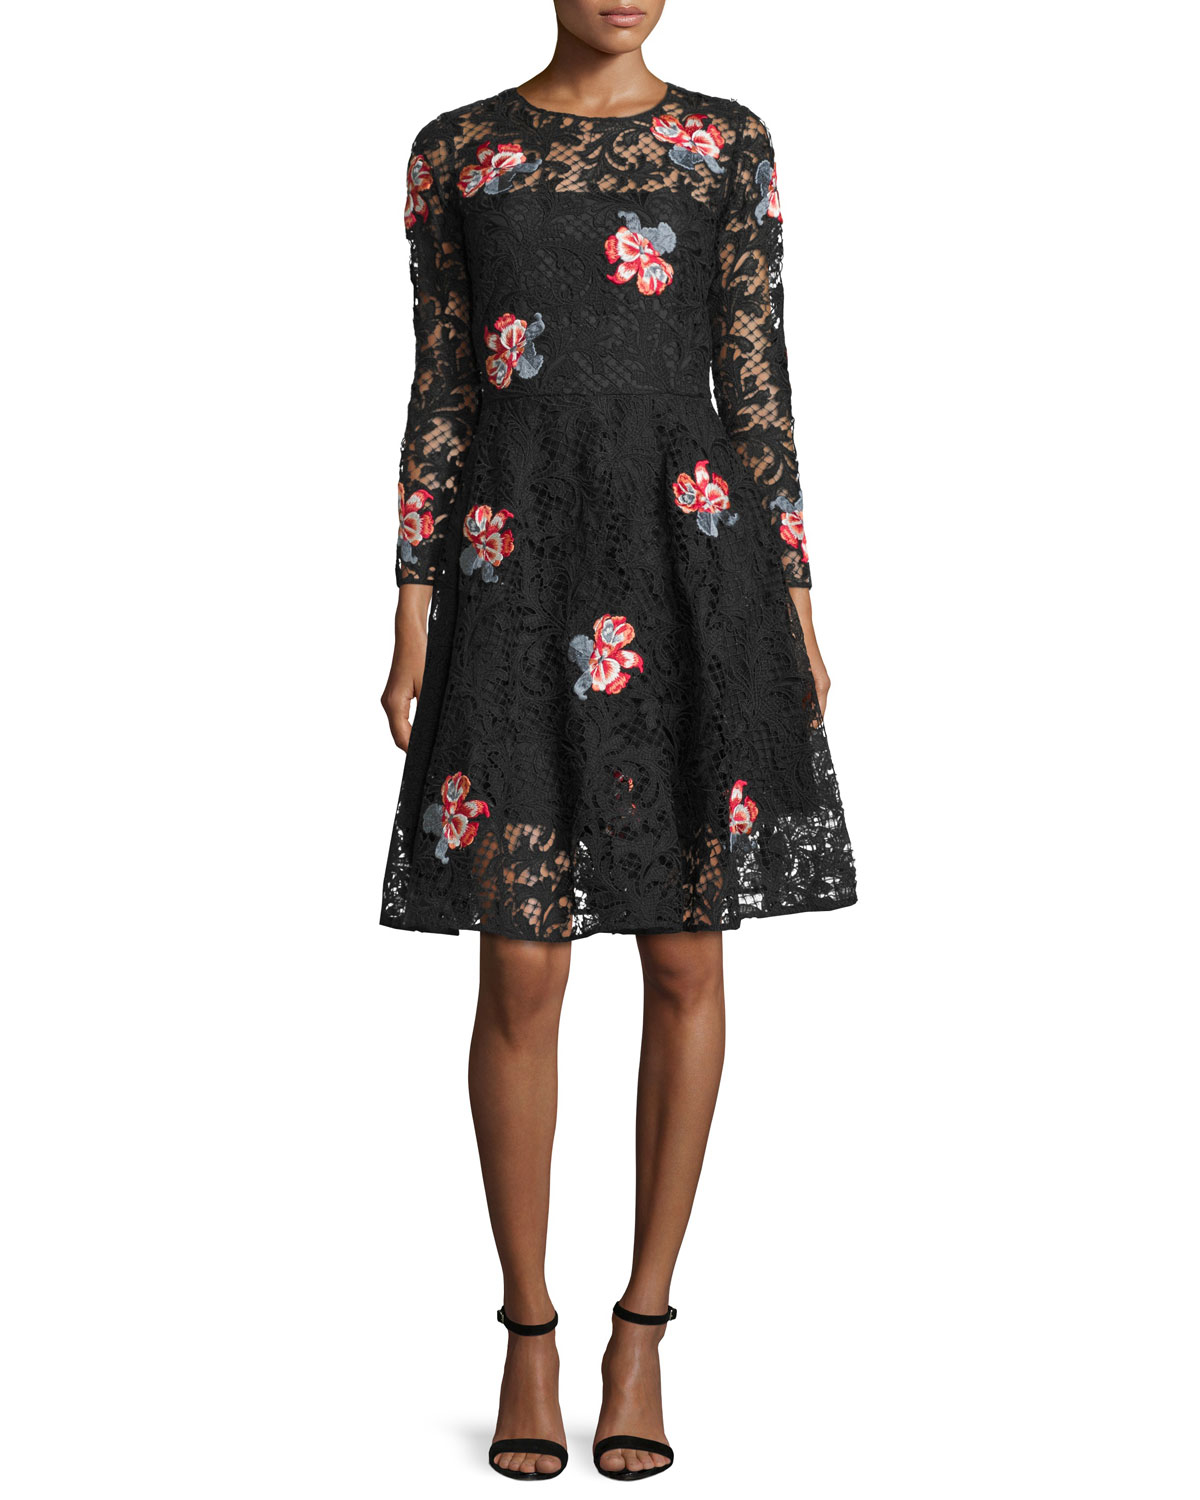 Sachin babi floral embroidered lace cocktail dress in